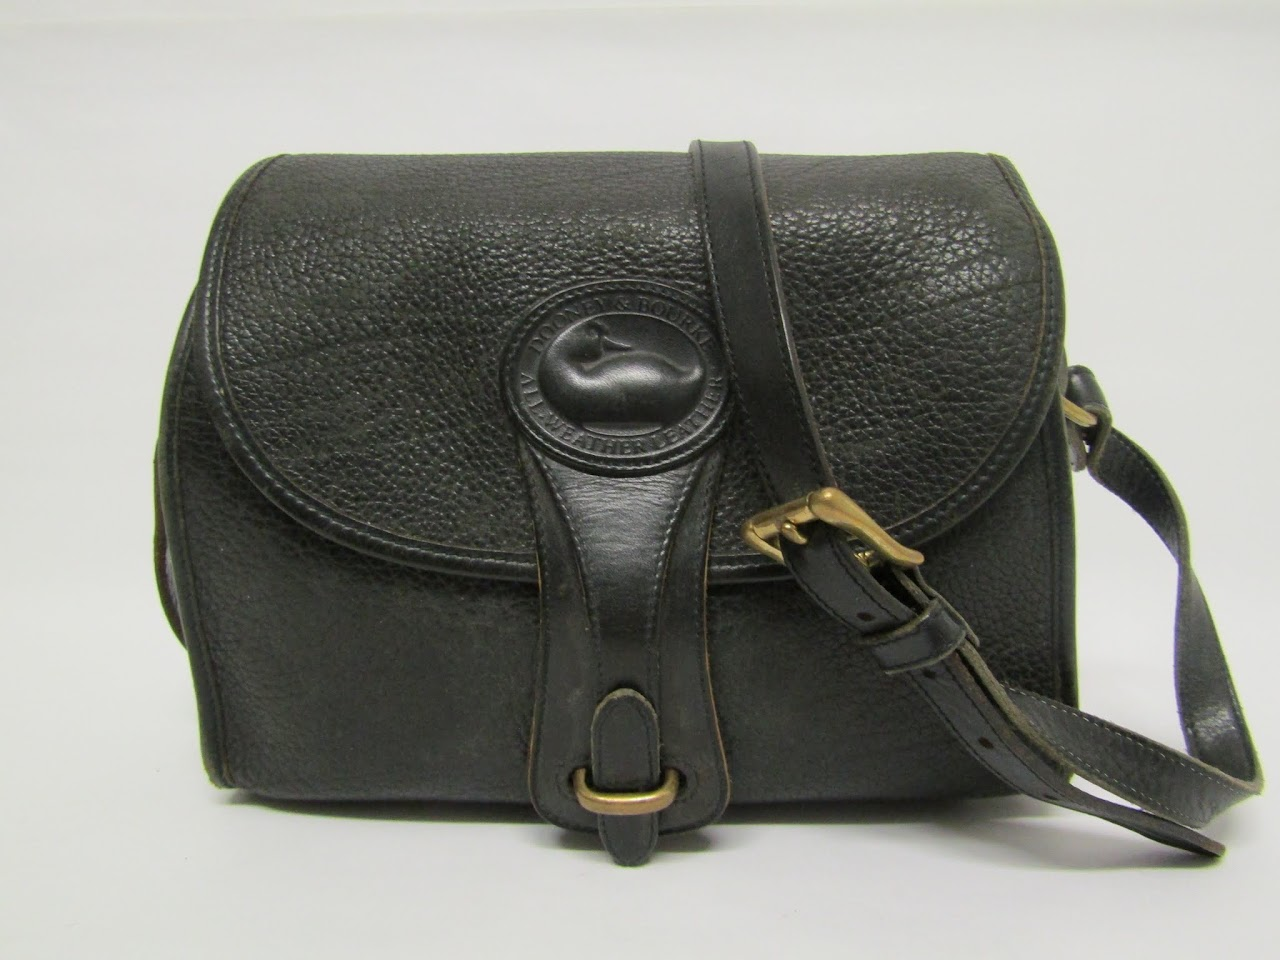 Dooney & Bourke Vintage Black Crossbody Bag